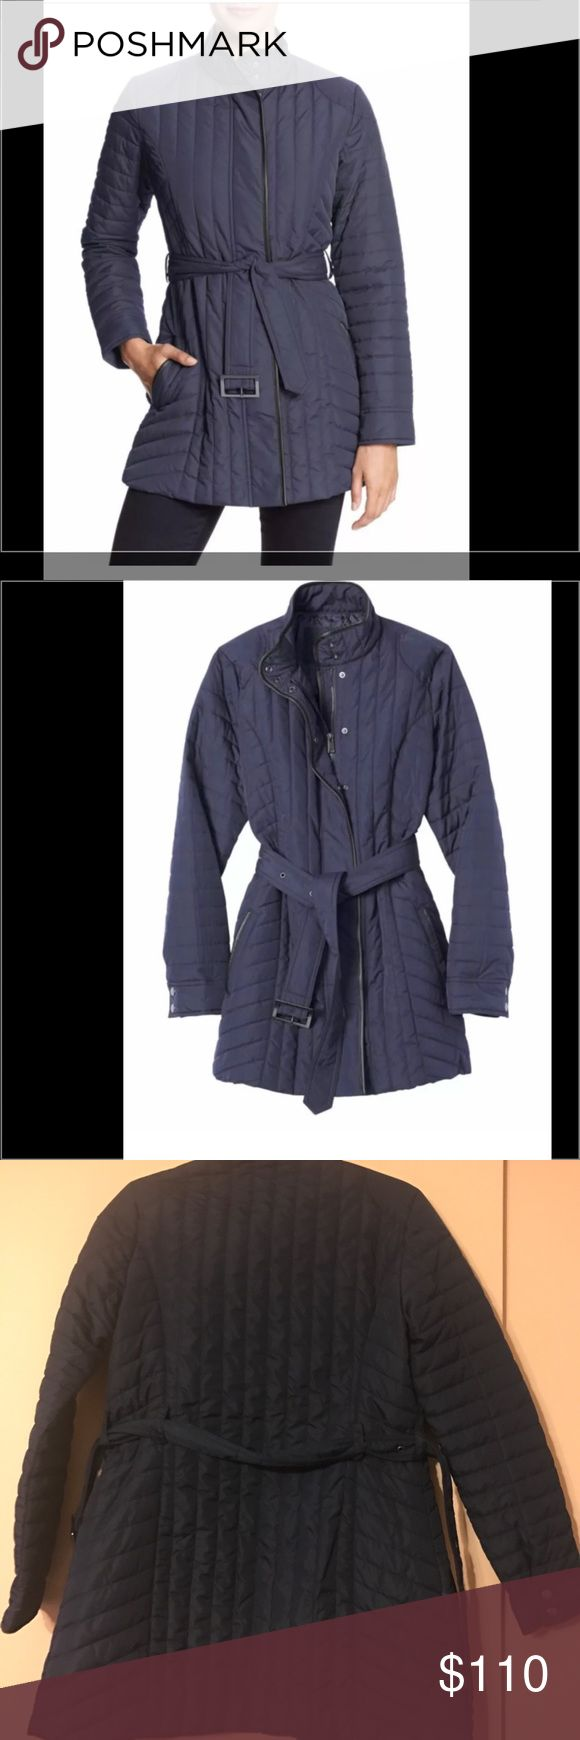 Banana Republic Women's Quilted Coat Evening Blue Imported. Hidden zipper with snap placket. Adjustable buckle belt. 100% polyester. Machine wash. Standing collar with snap closure. Banana Republic Jackets & Coats